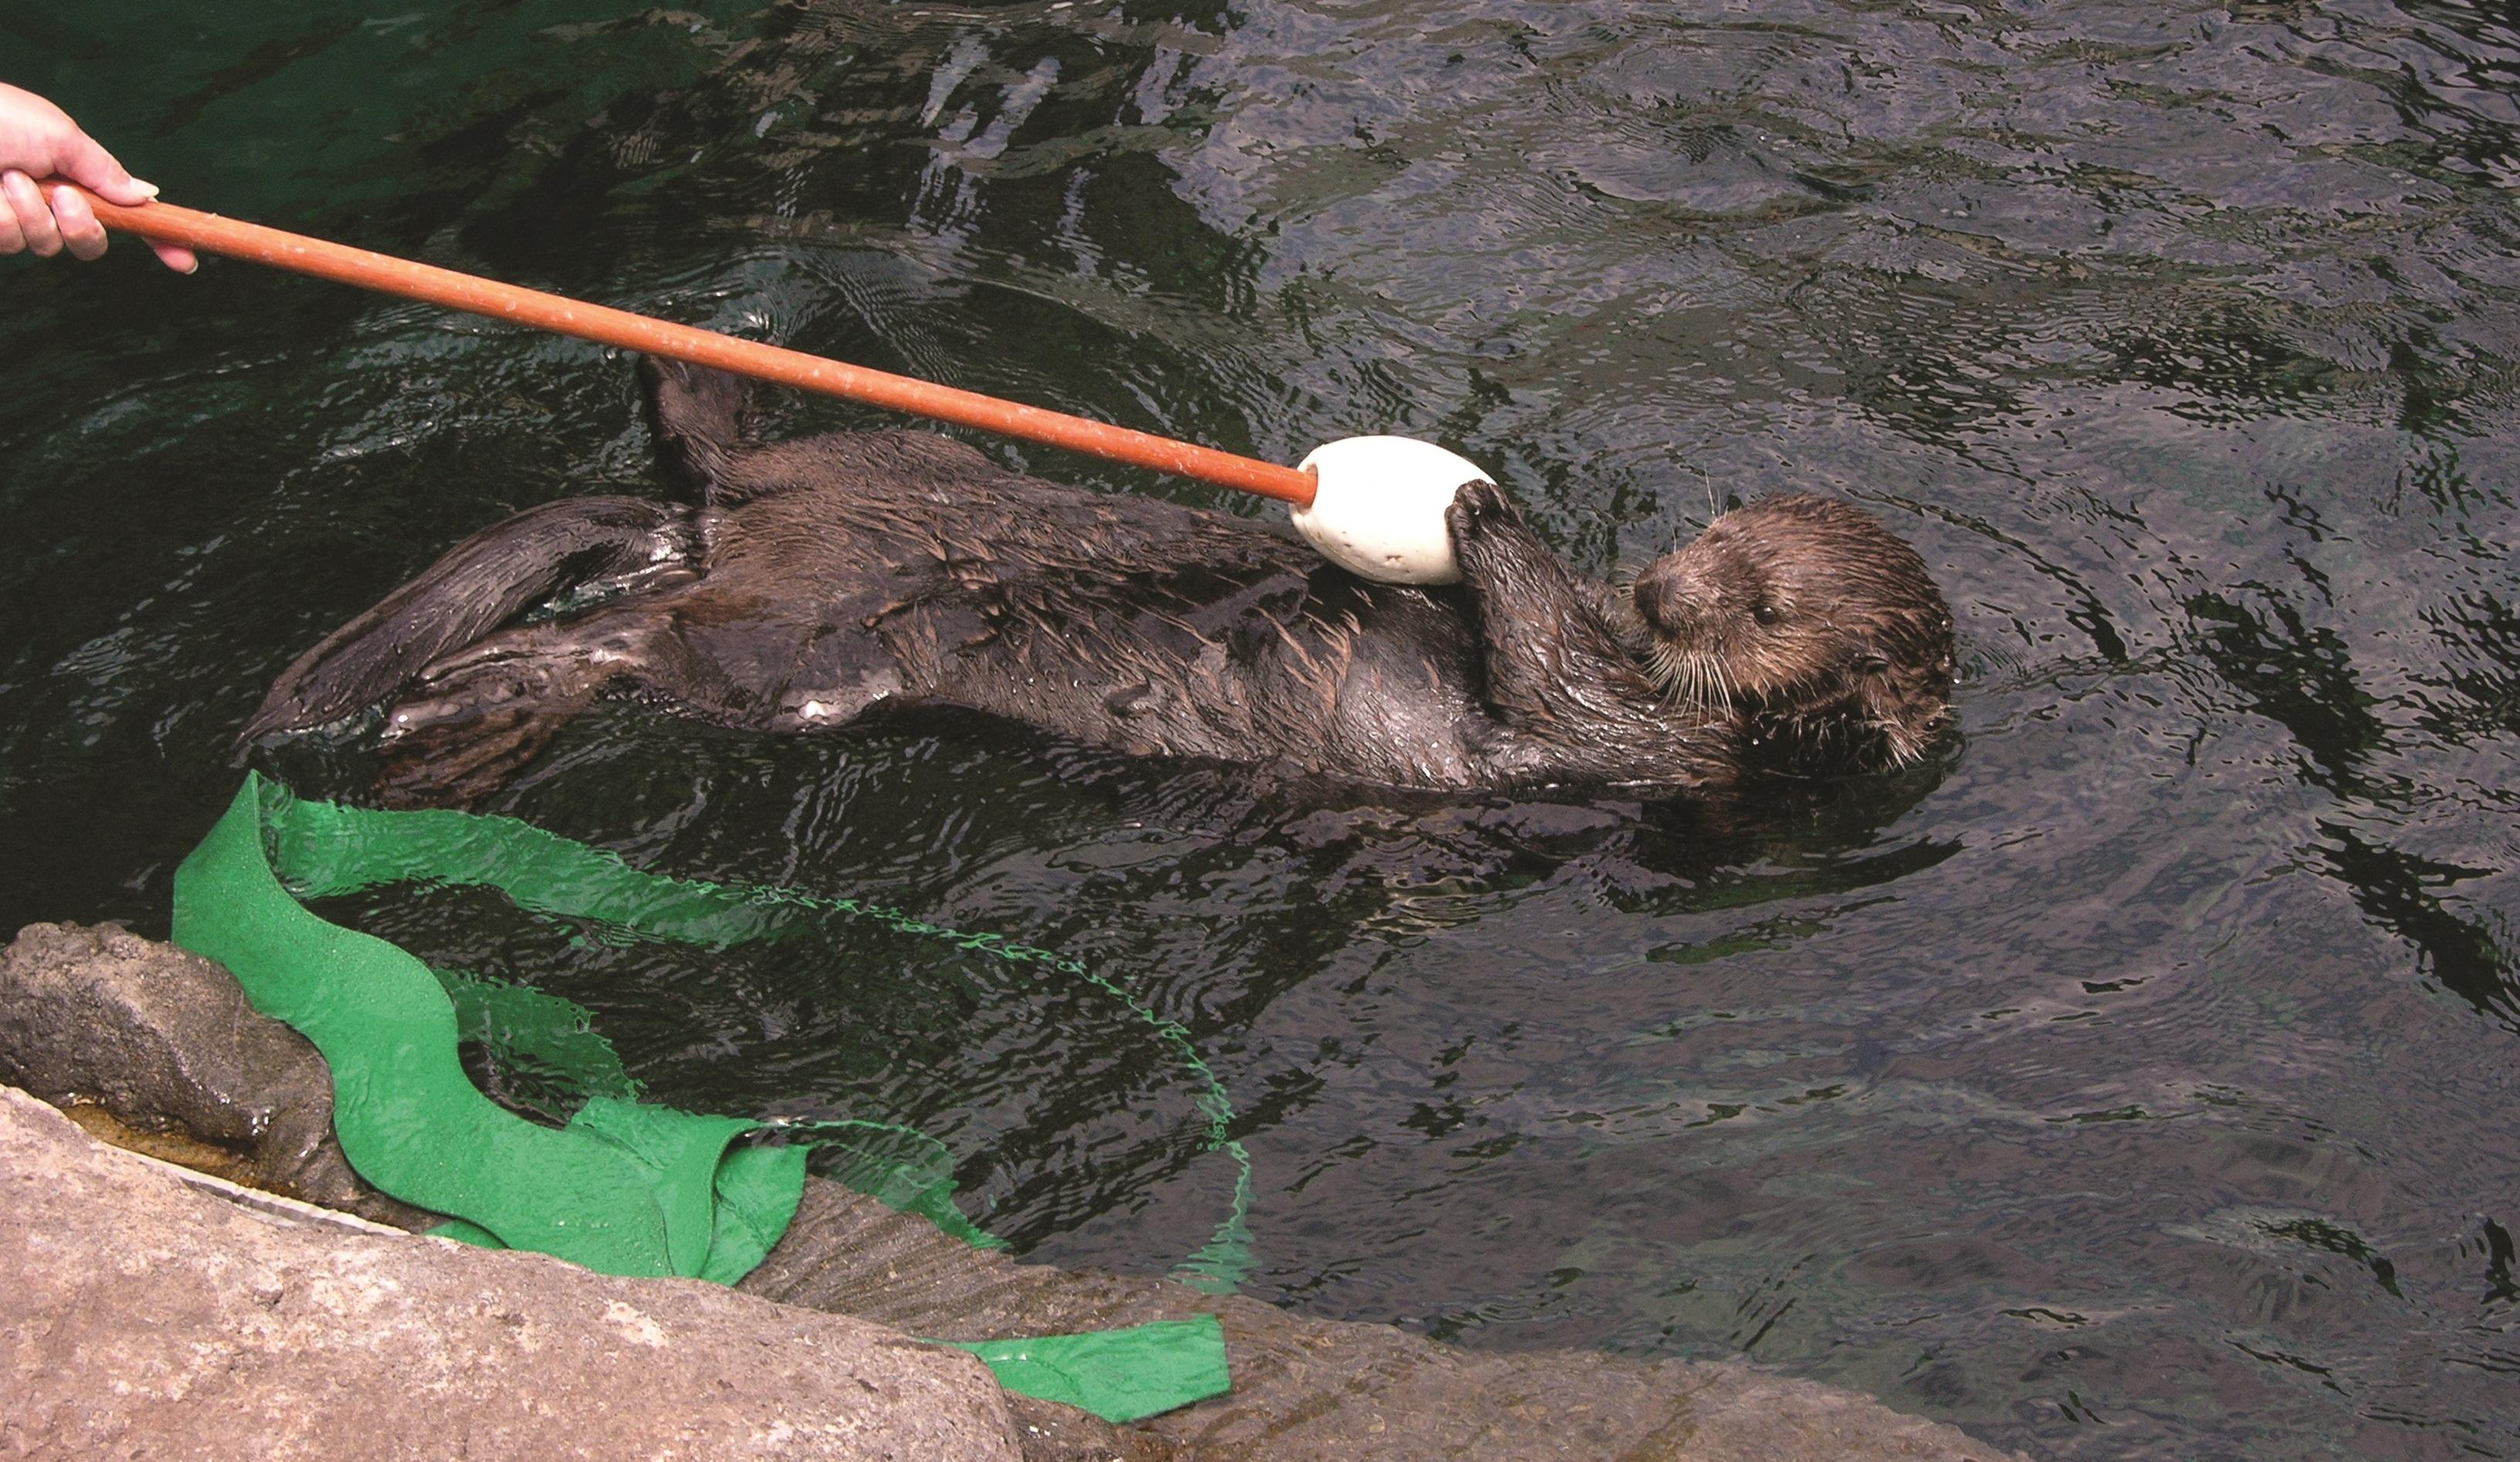 A sea otter training session.